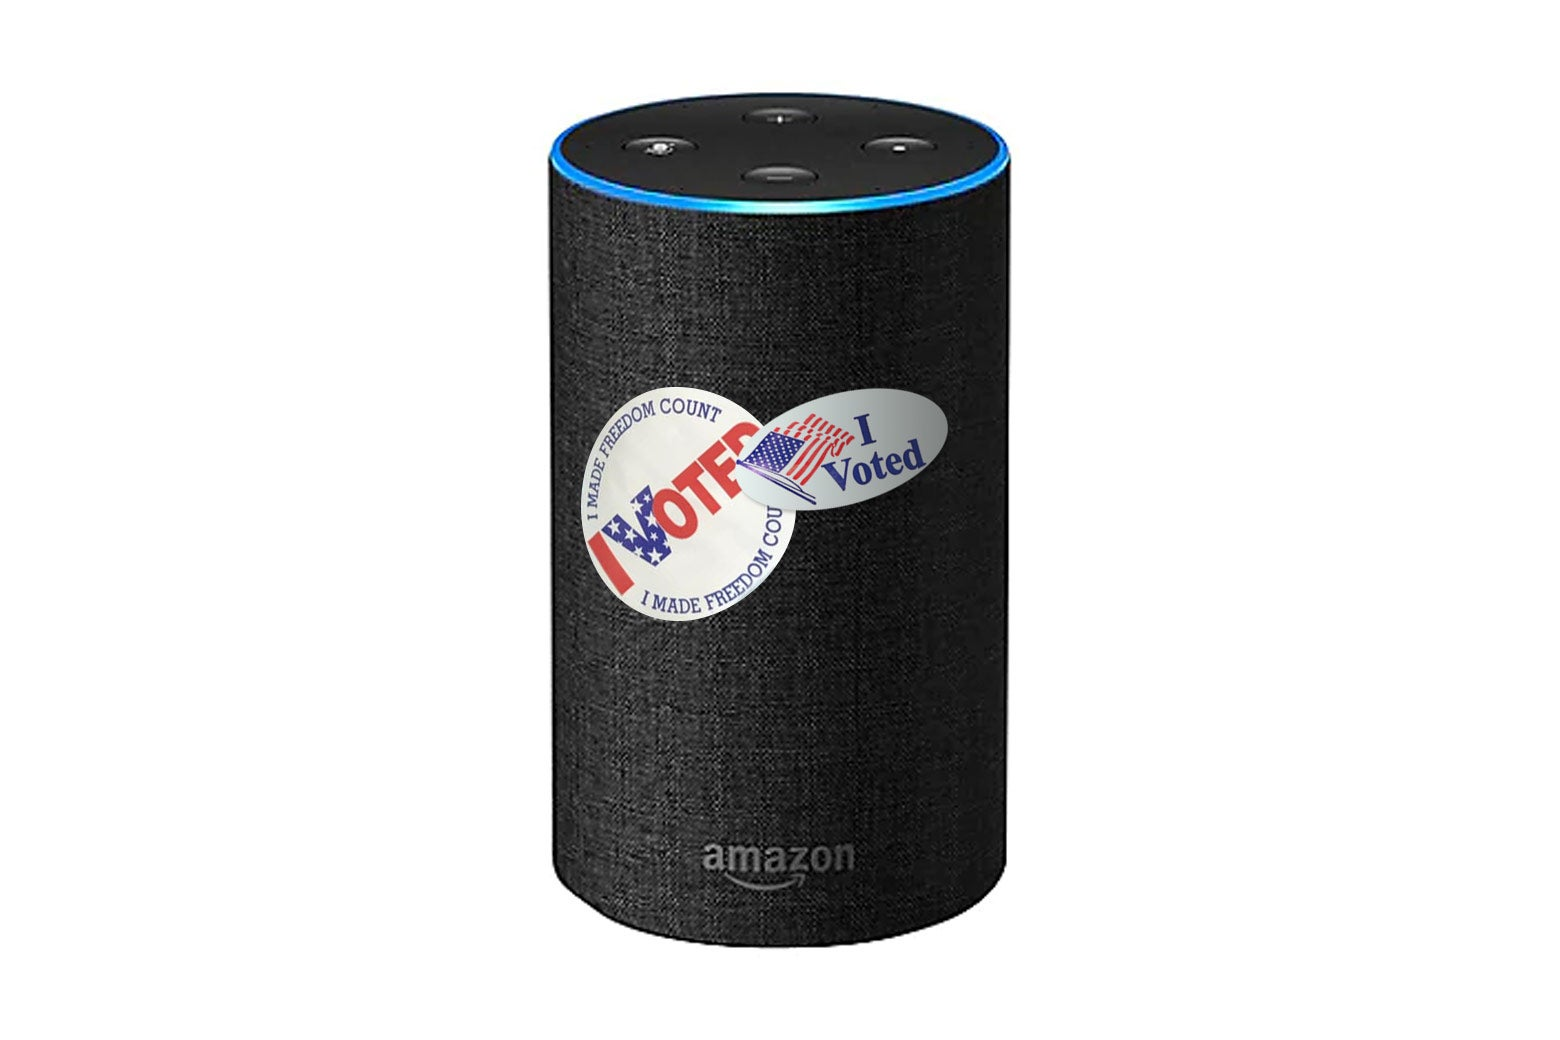 An Amazon echo with two I Voted stickers